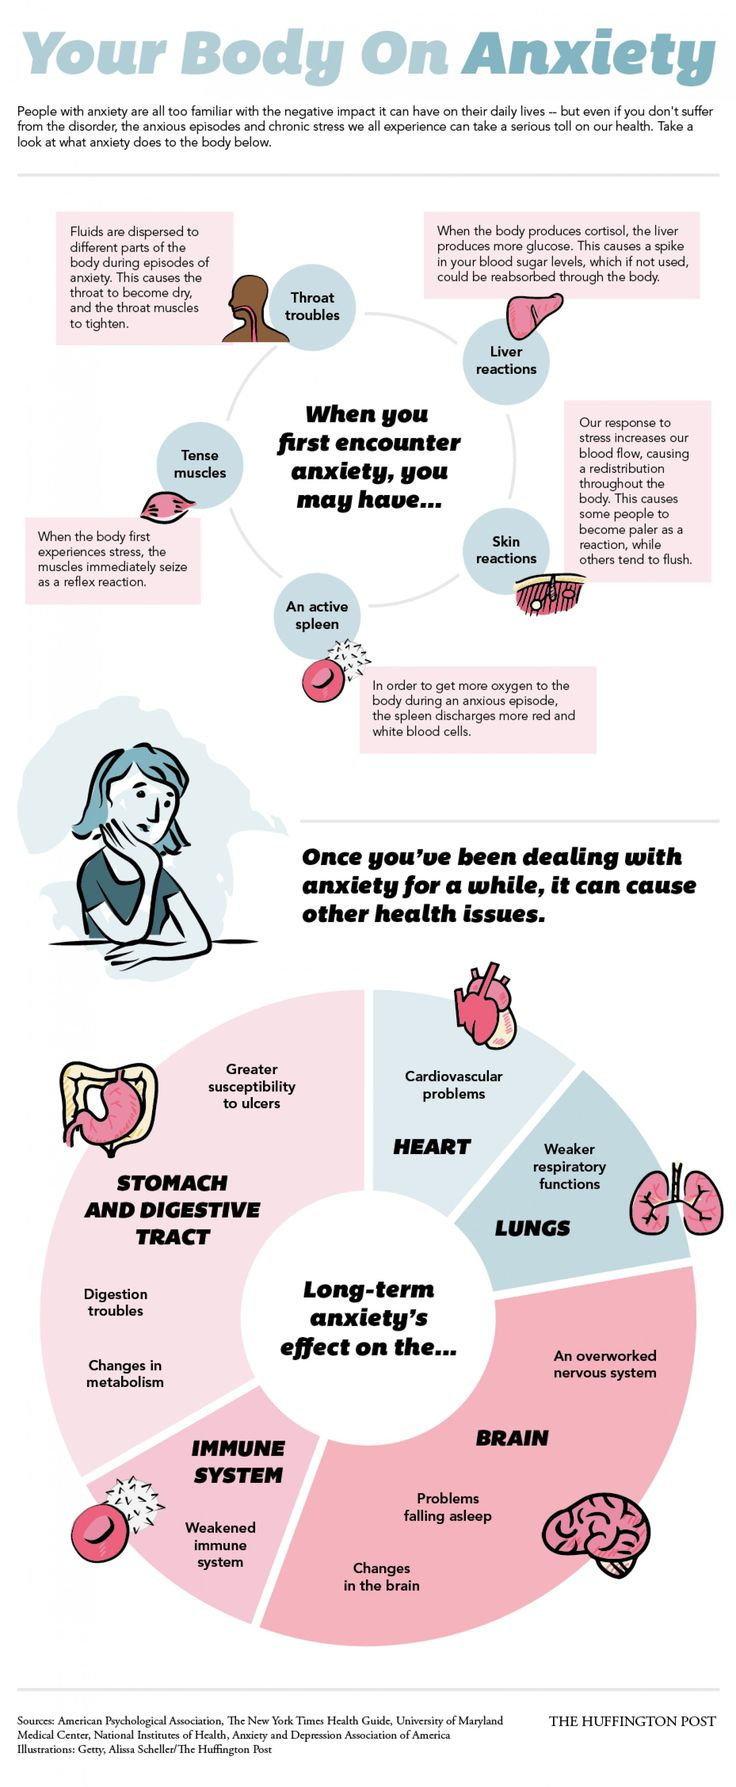 Your Body on Anxiety...i have quite a few of these problems. Good information to know.